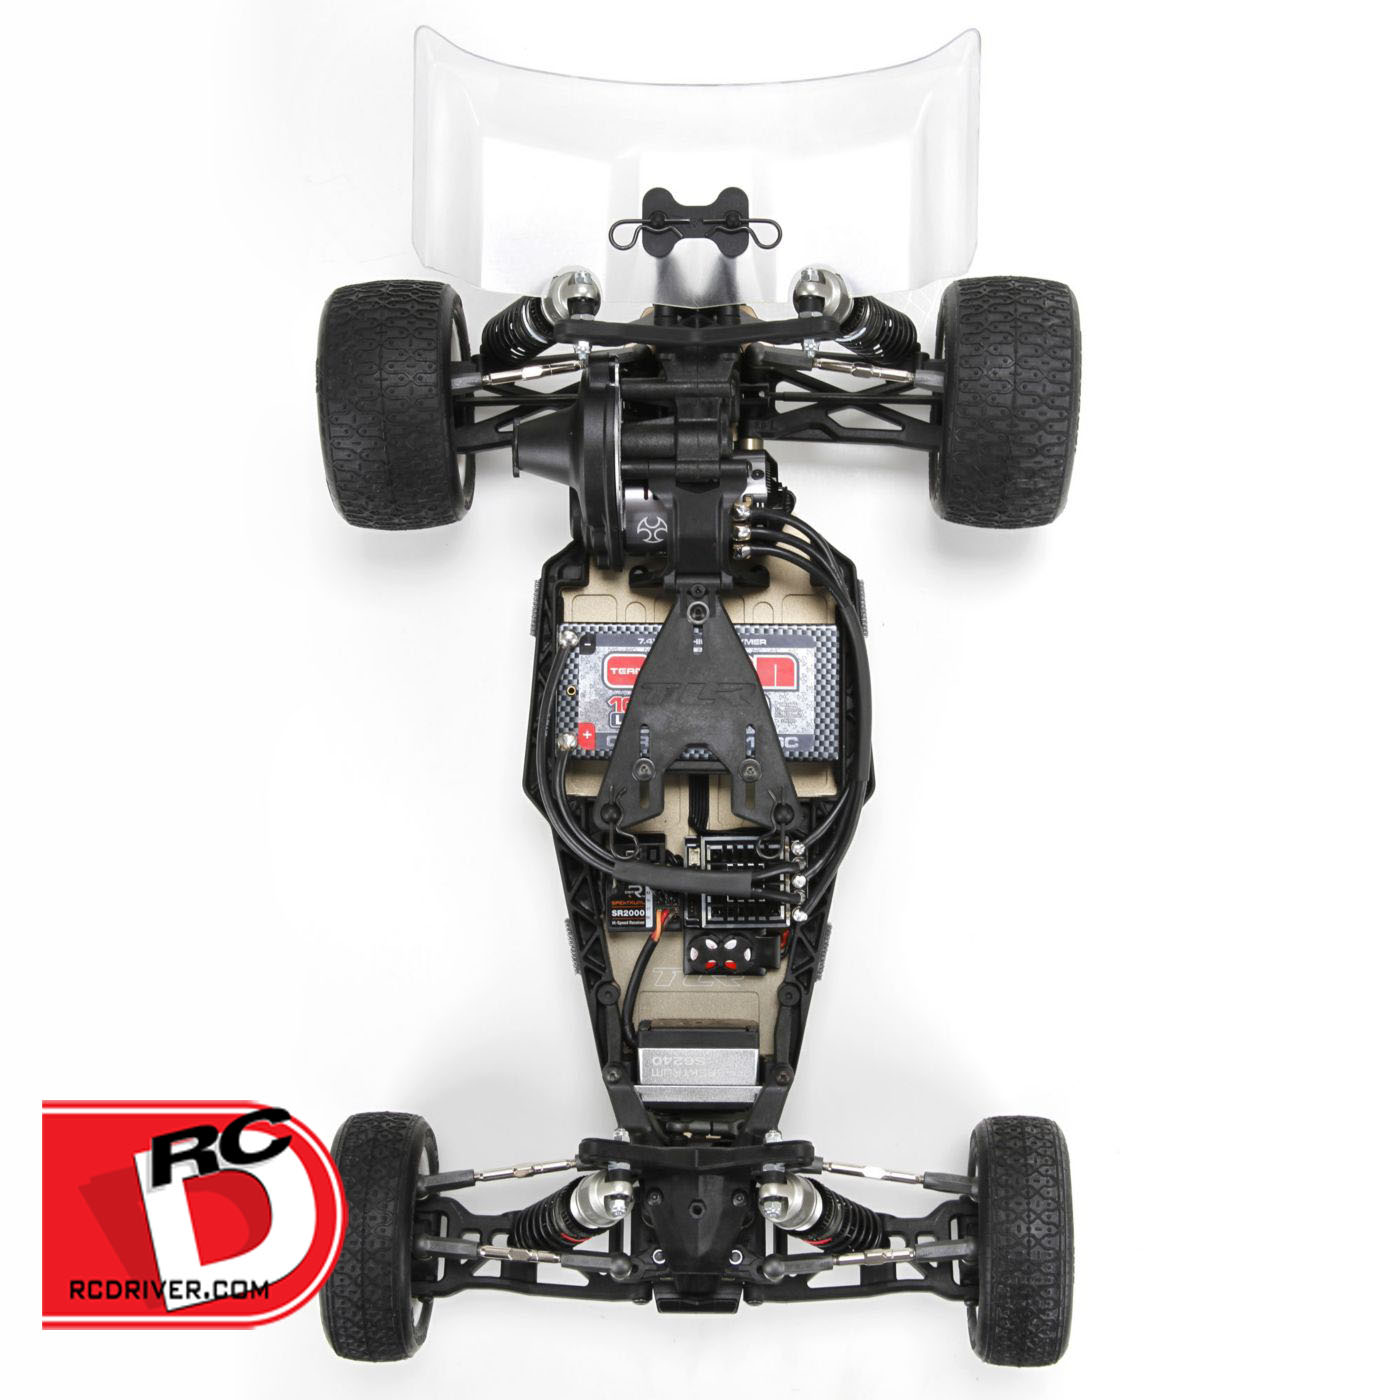 Team Losi Racing 22 3 0 Mid Motor 2WD Buggy G1